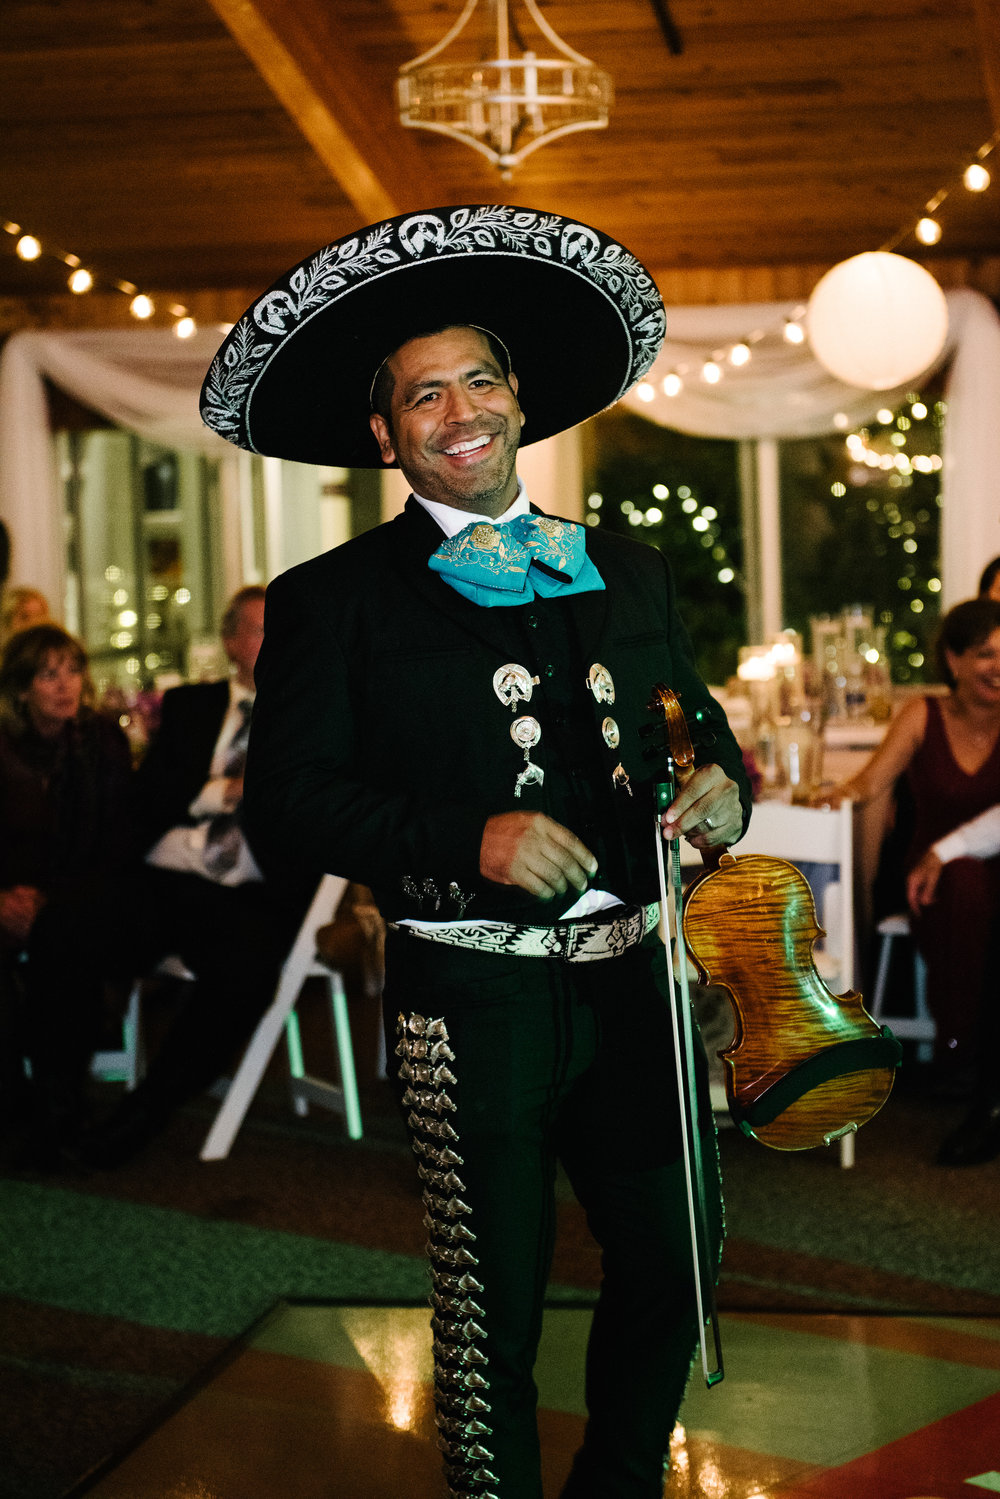 wedding mariachi band | Dillinger Studios Minneapolis Photographer | Mexican American fusion wedding | Sixpence Events & Planning Minnesota wedding planner .jpg